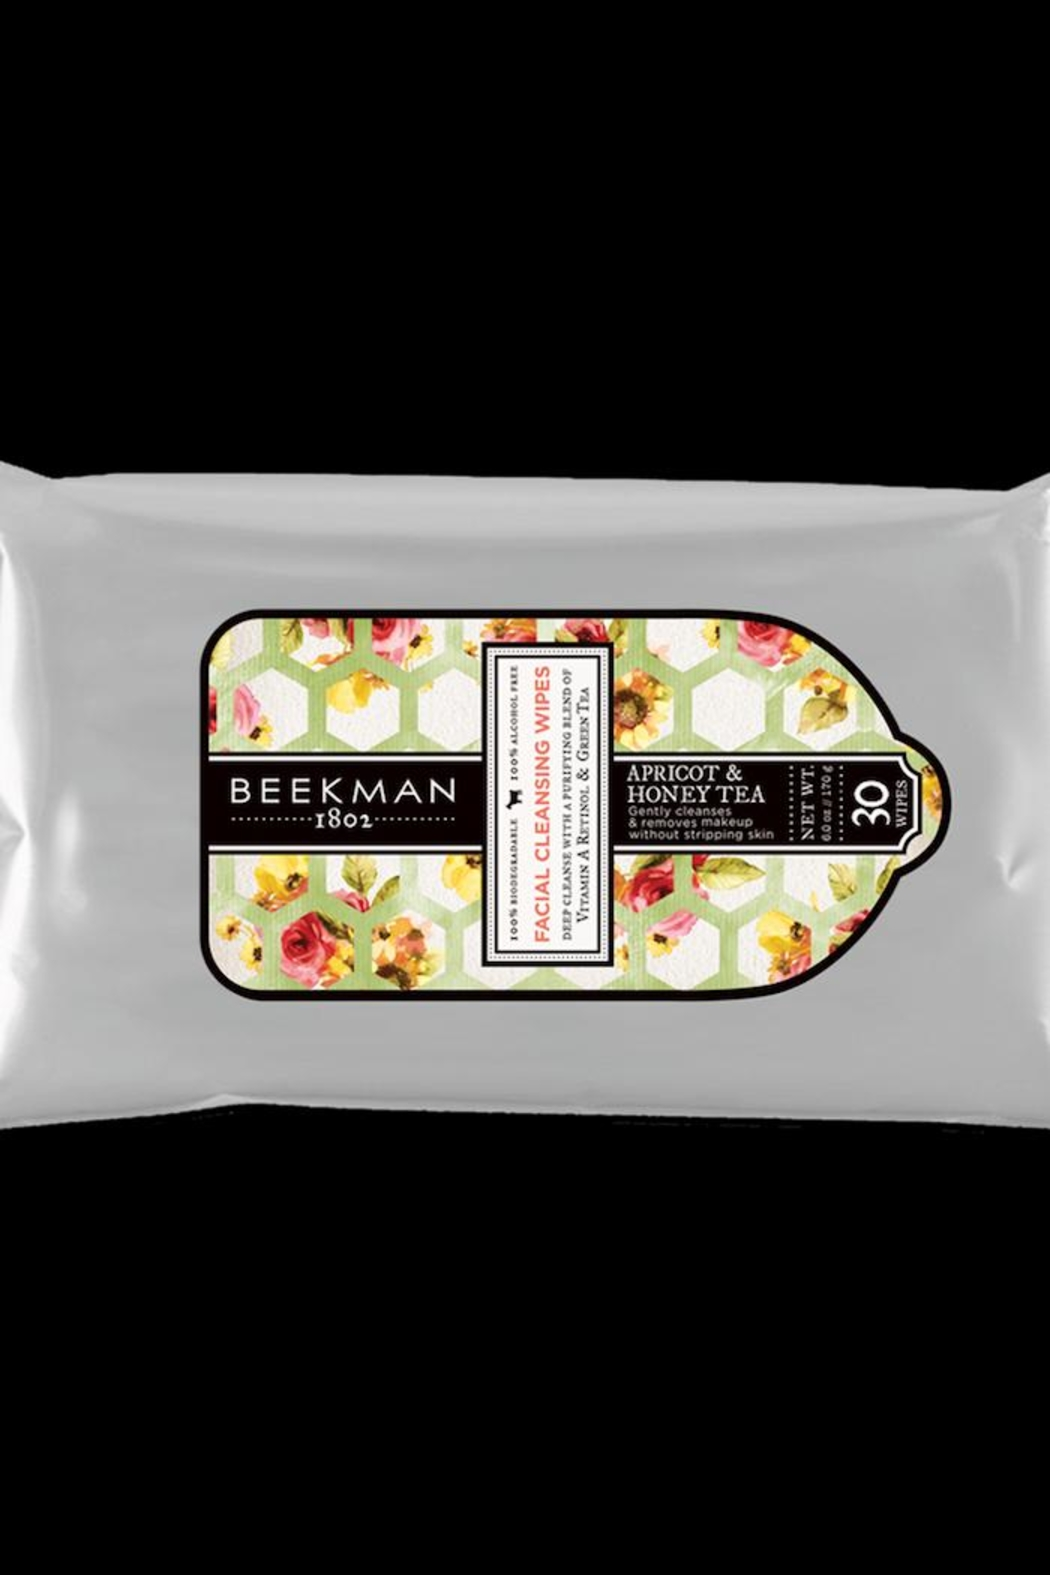 Beekman 1802 Facial Cleansing Wipes - Main Image